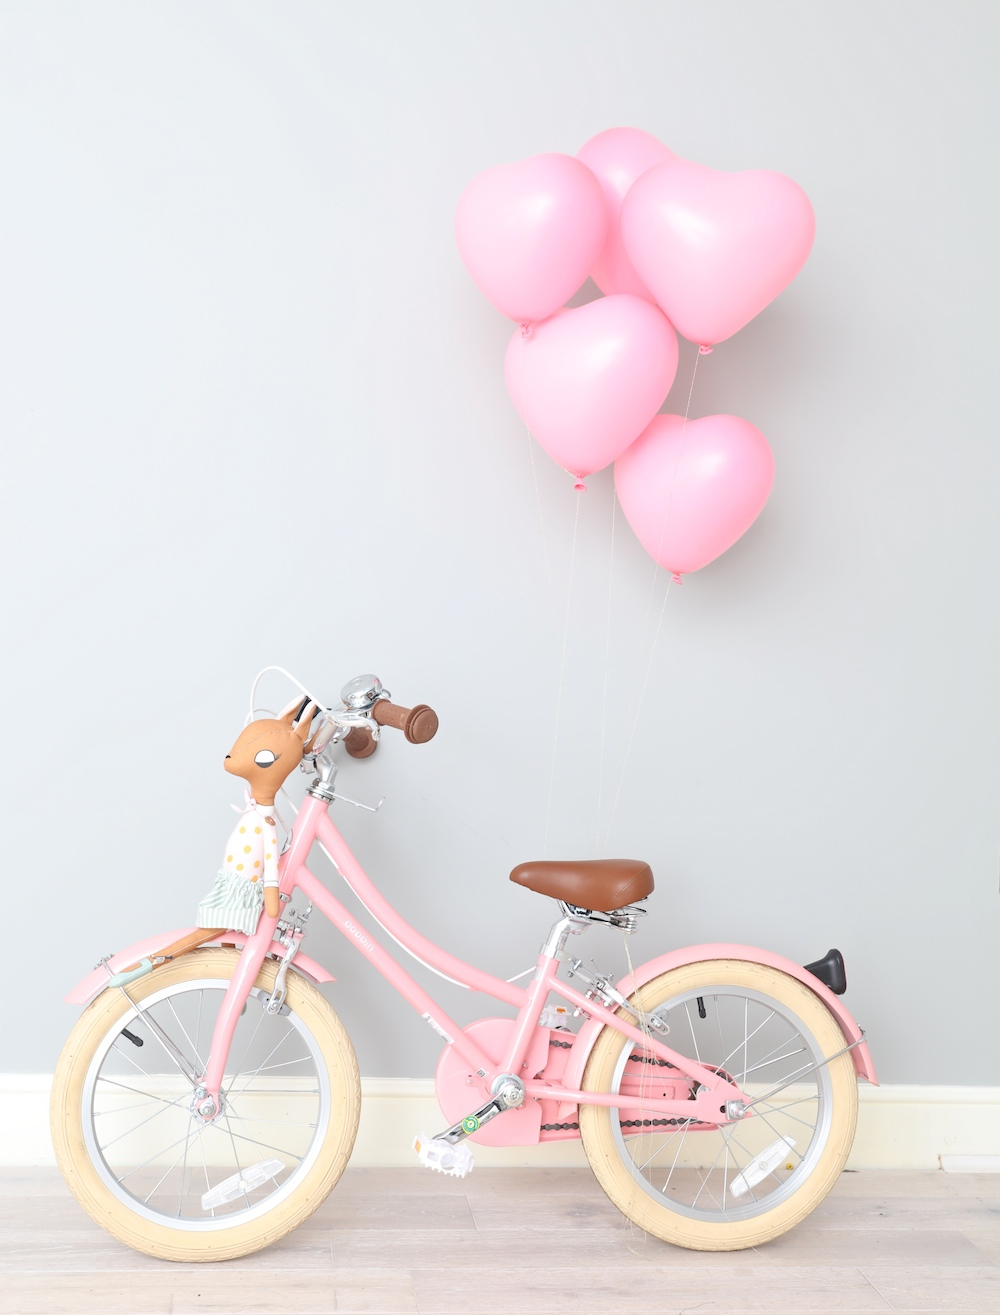 party-birthday_pink_bike_hearts_balloons_bobbin